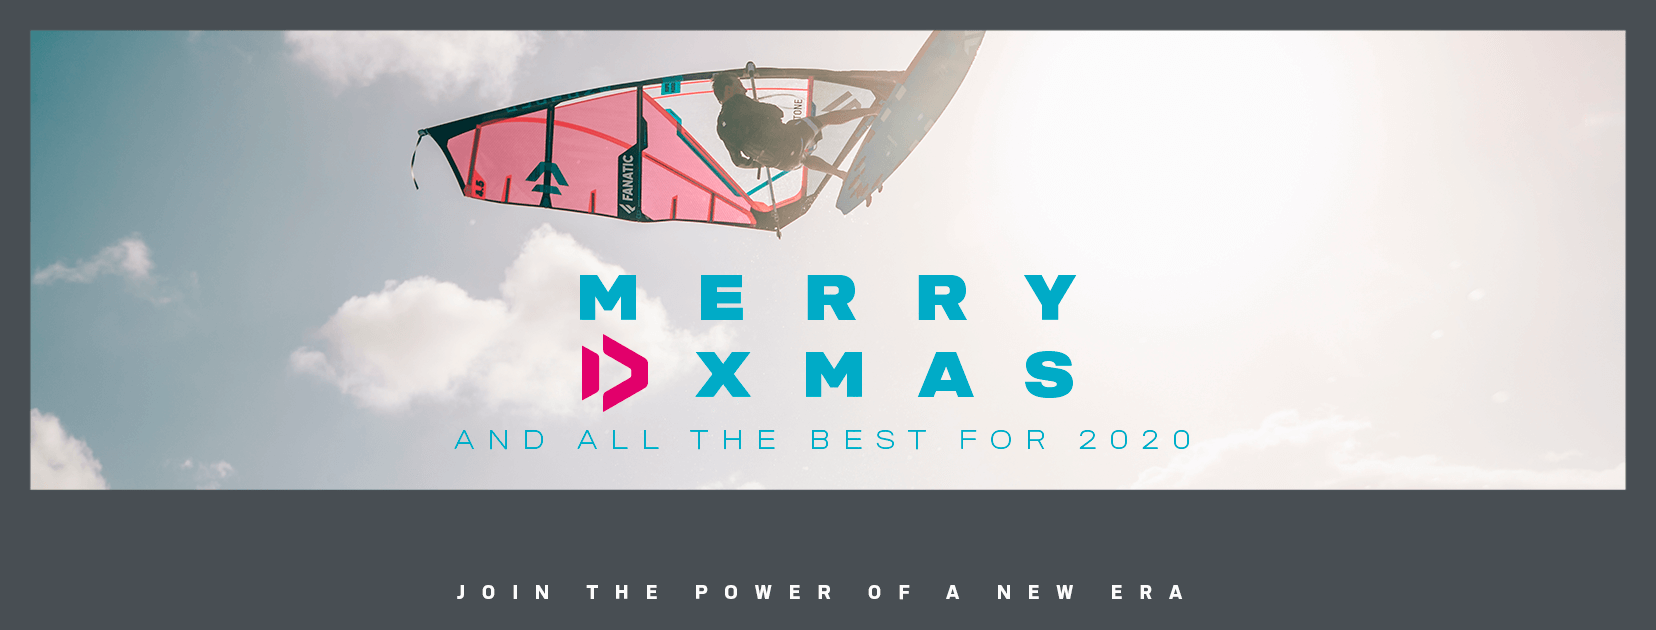 Duotone_Windsurfing_Season_Greetings